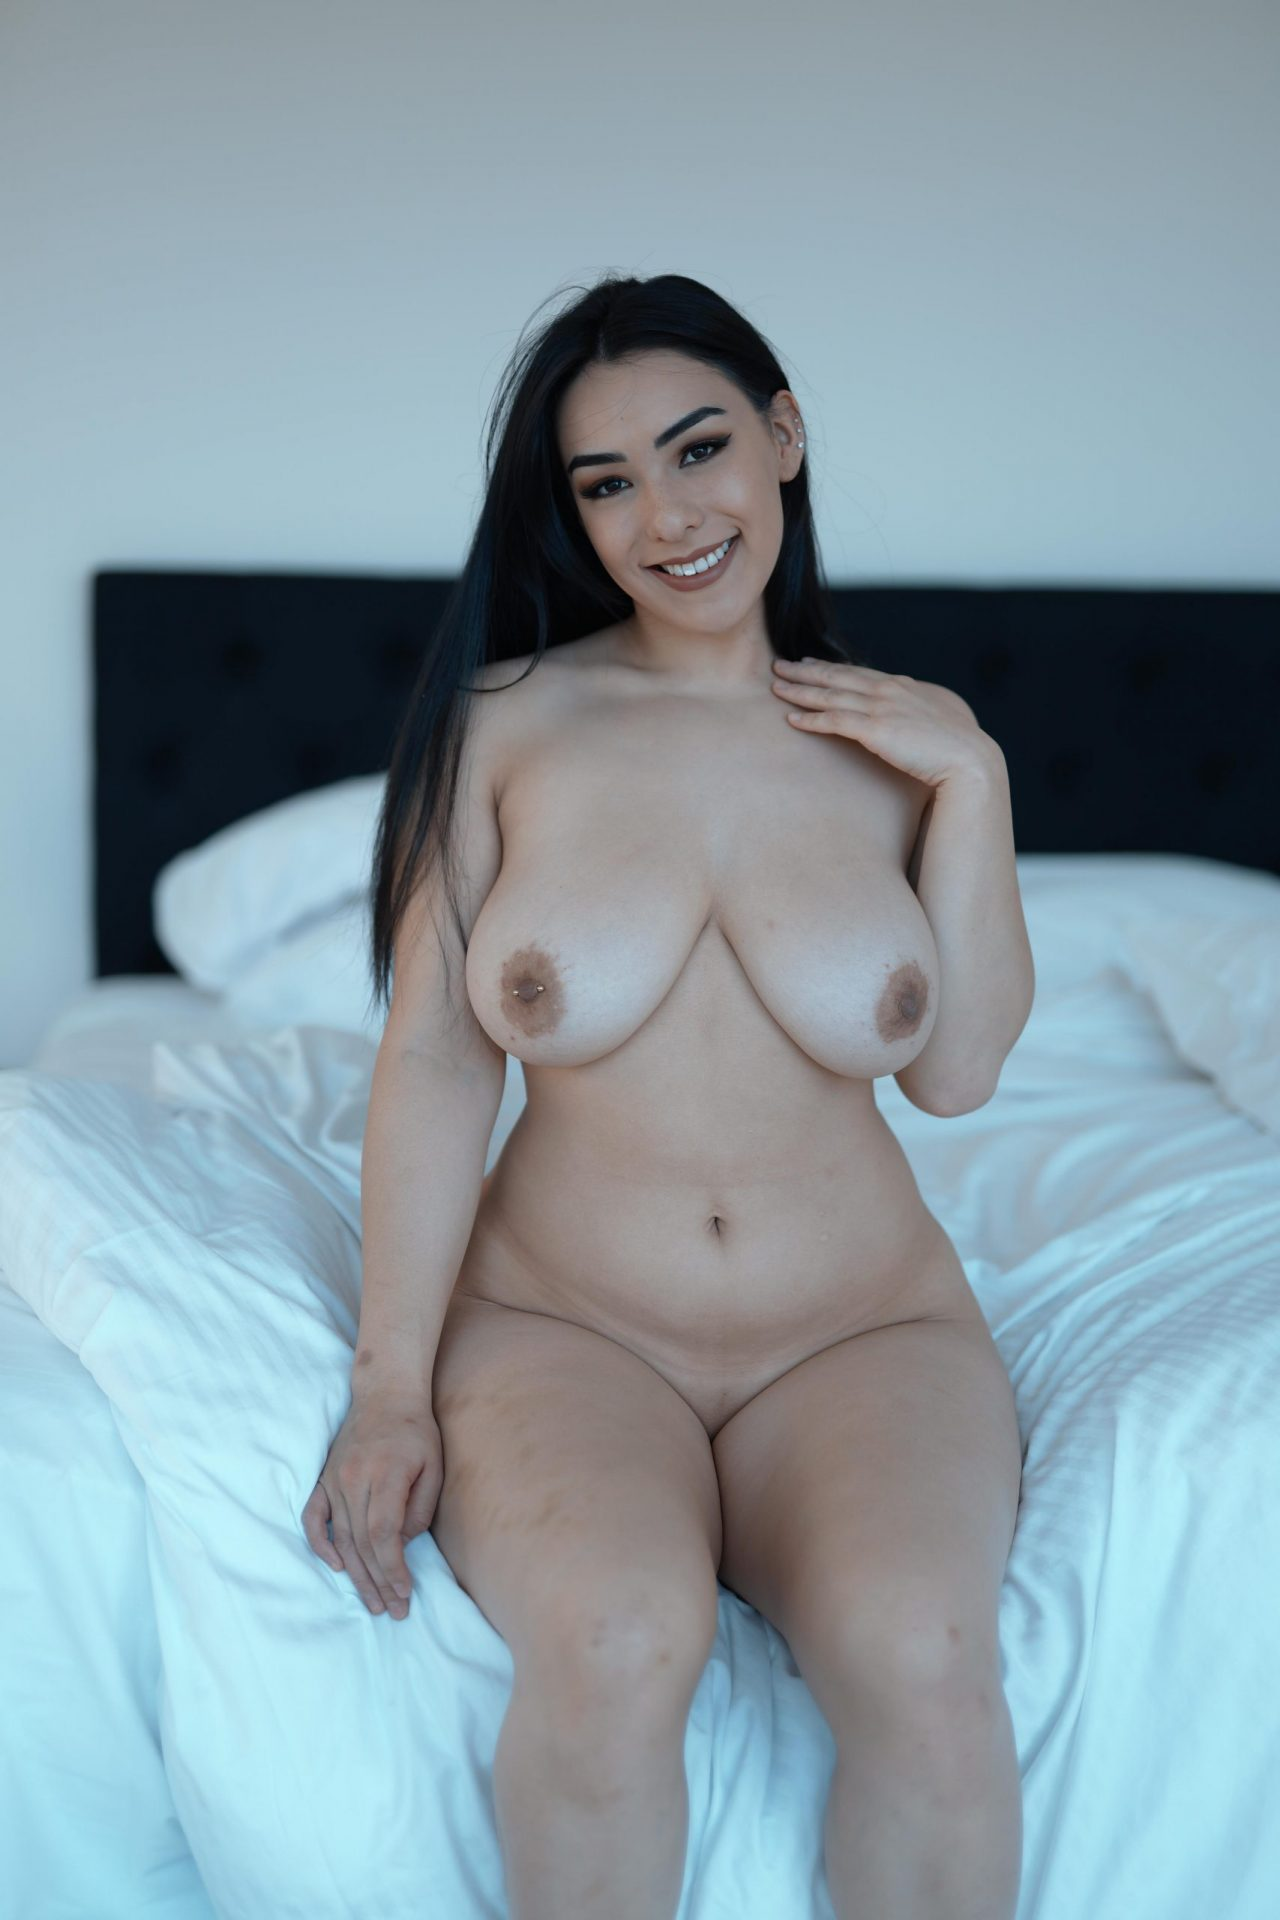 Would you fuck this half Chinese-Malaysian girl?